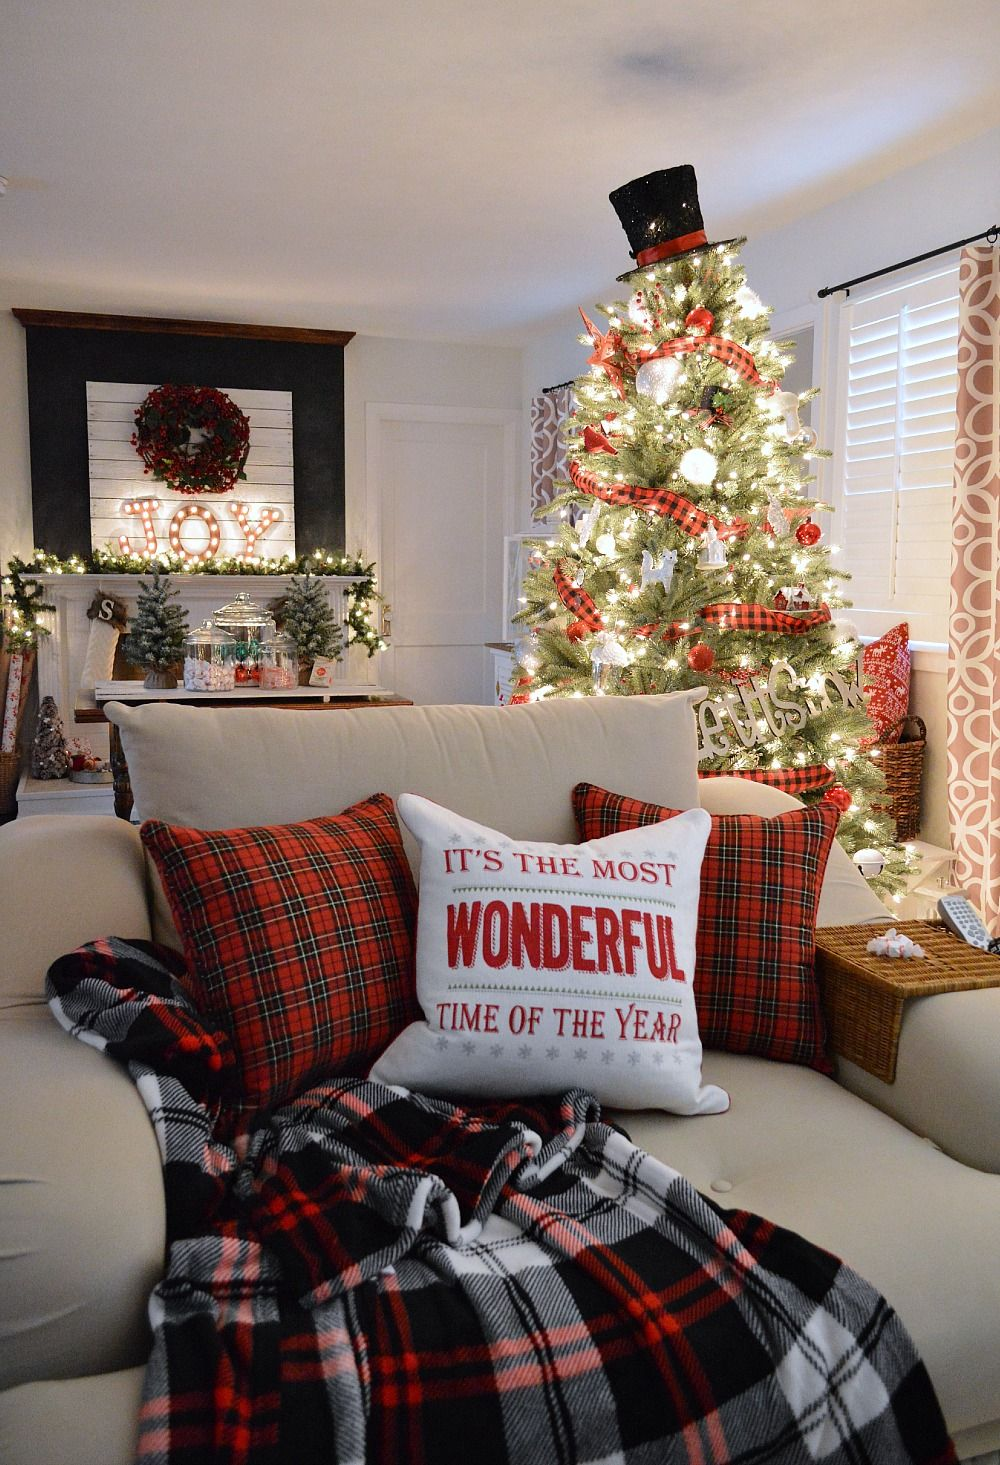 Country Living Christmas Home Tours Day Five Wonderful time Red